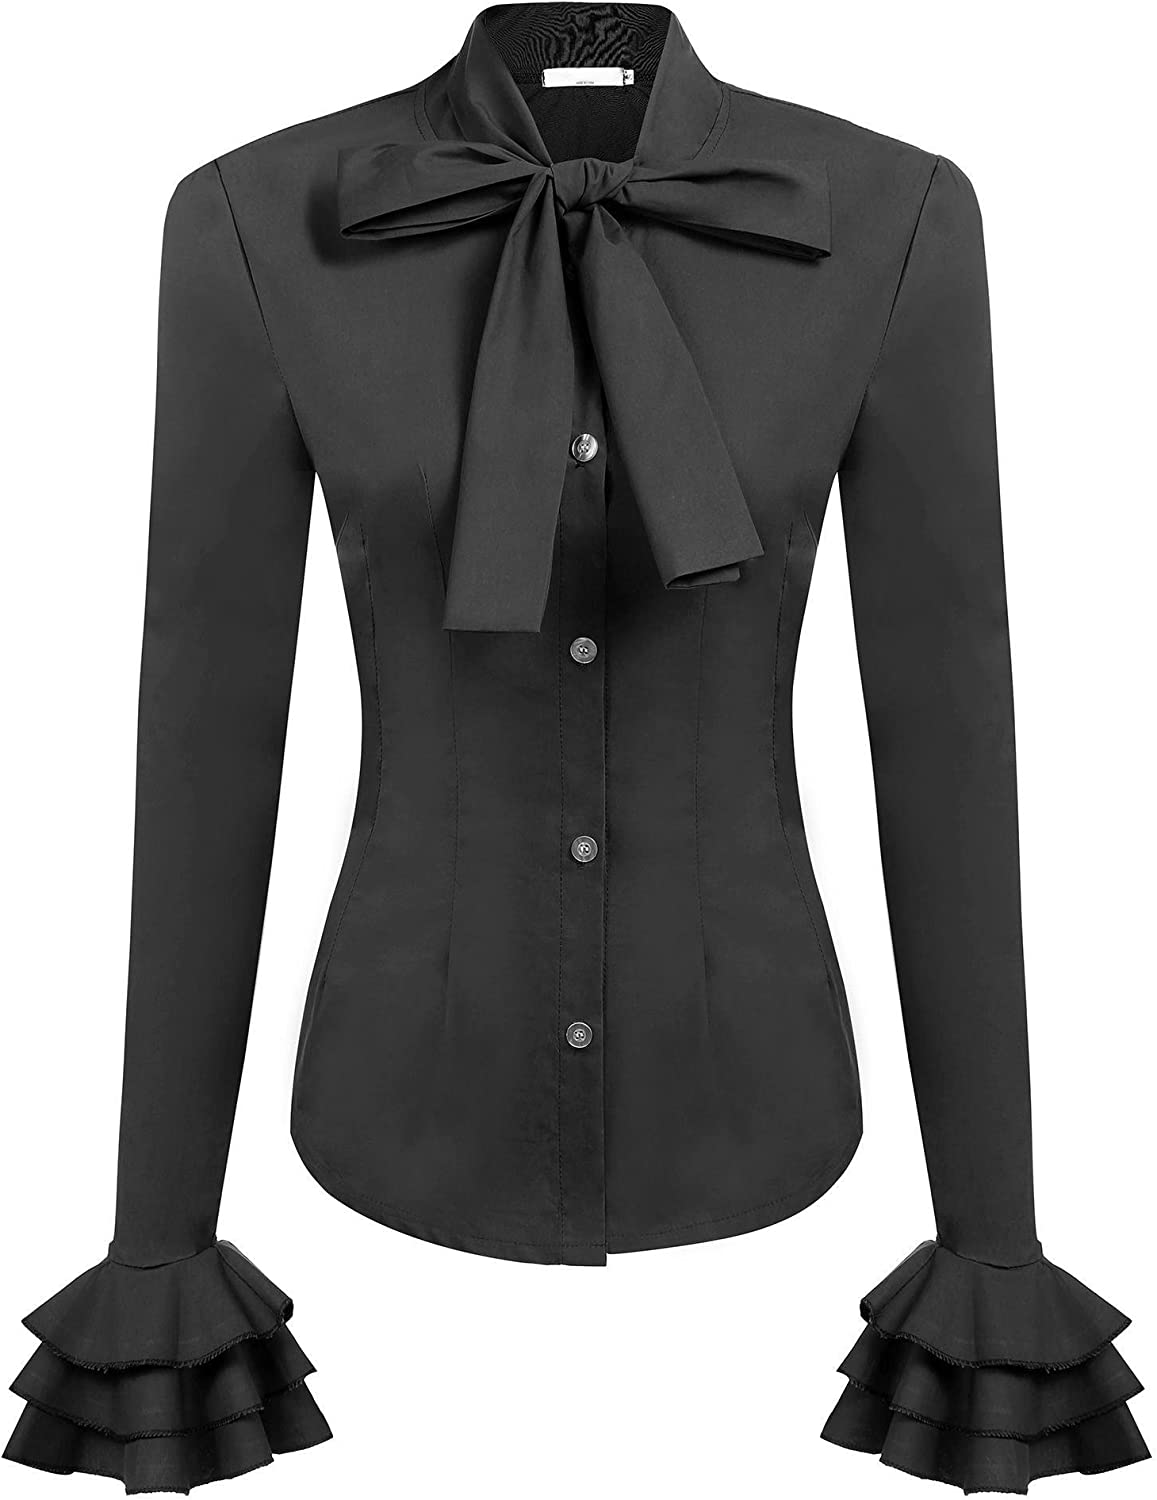 Zeagoo Women Bow Tie Neck Blouses Work Tops Long Sleeve Casual Button Shirts